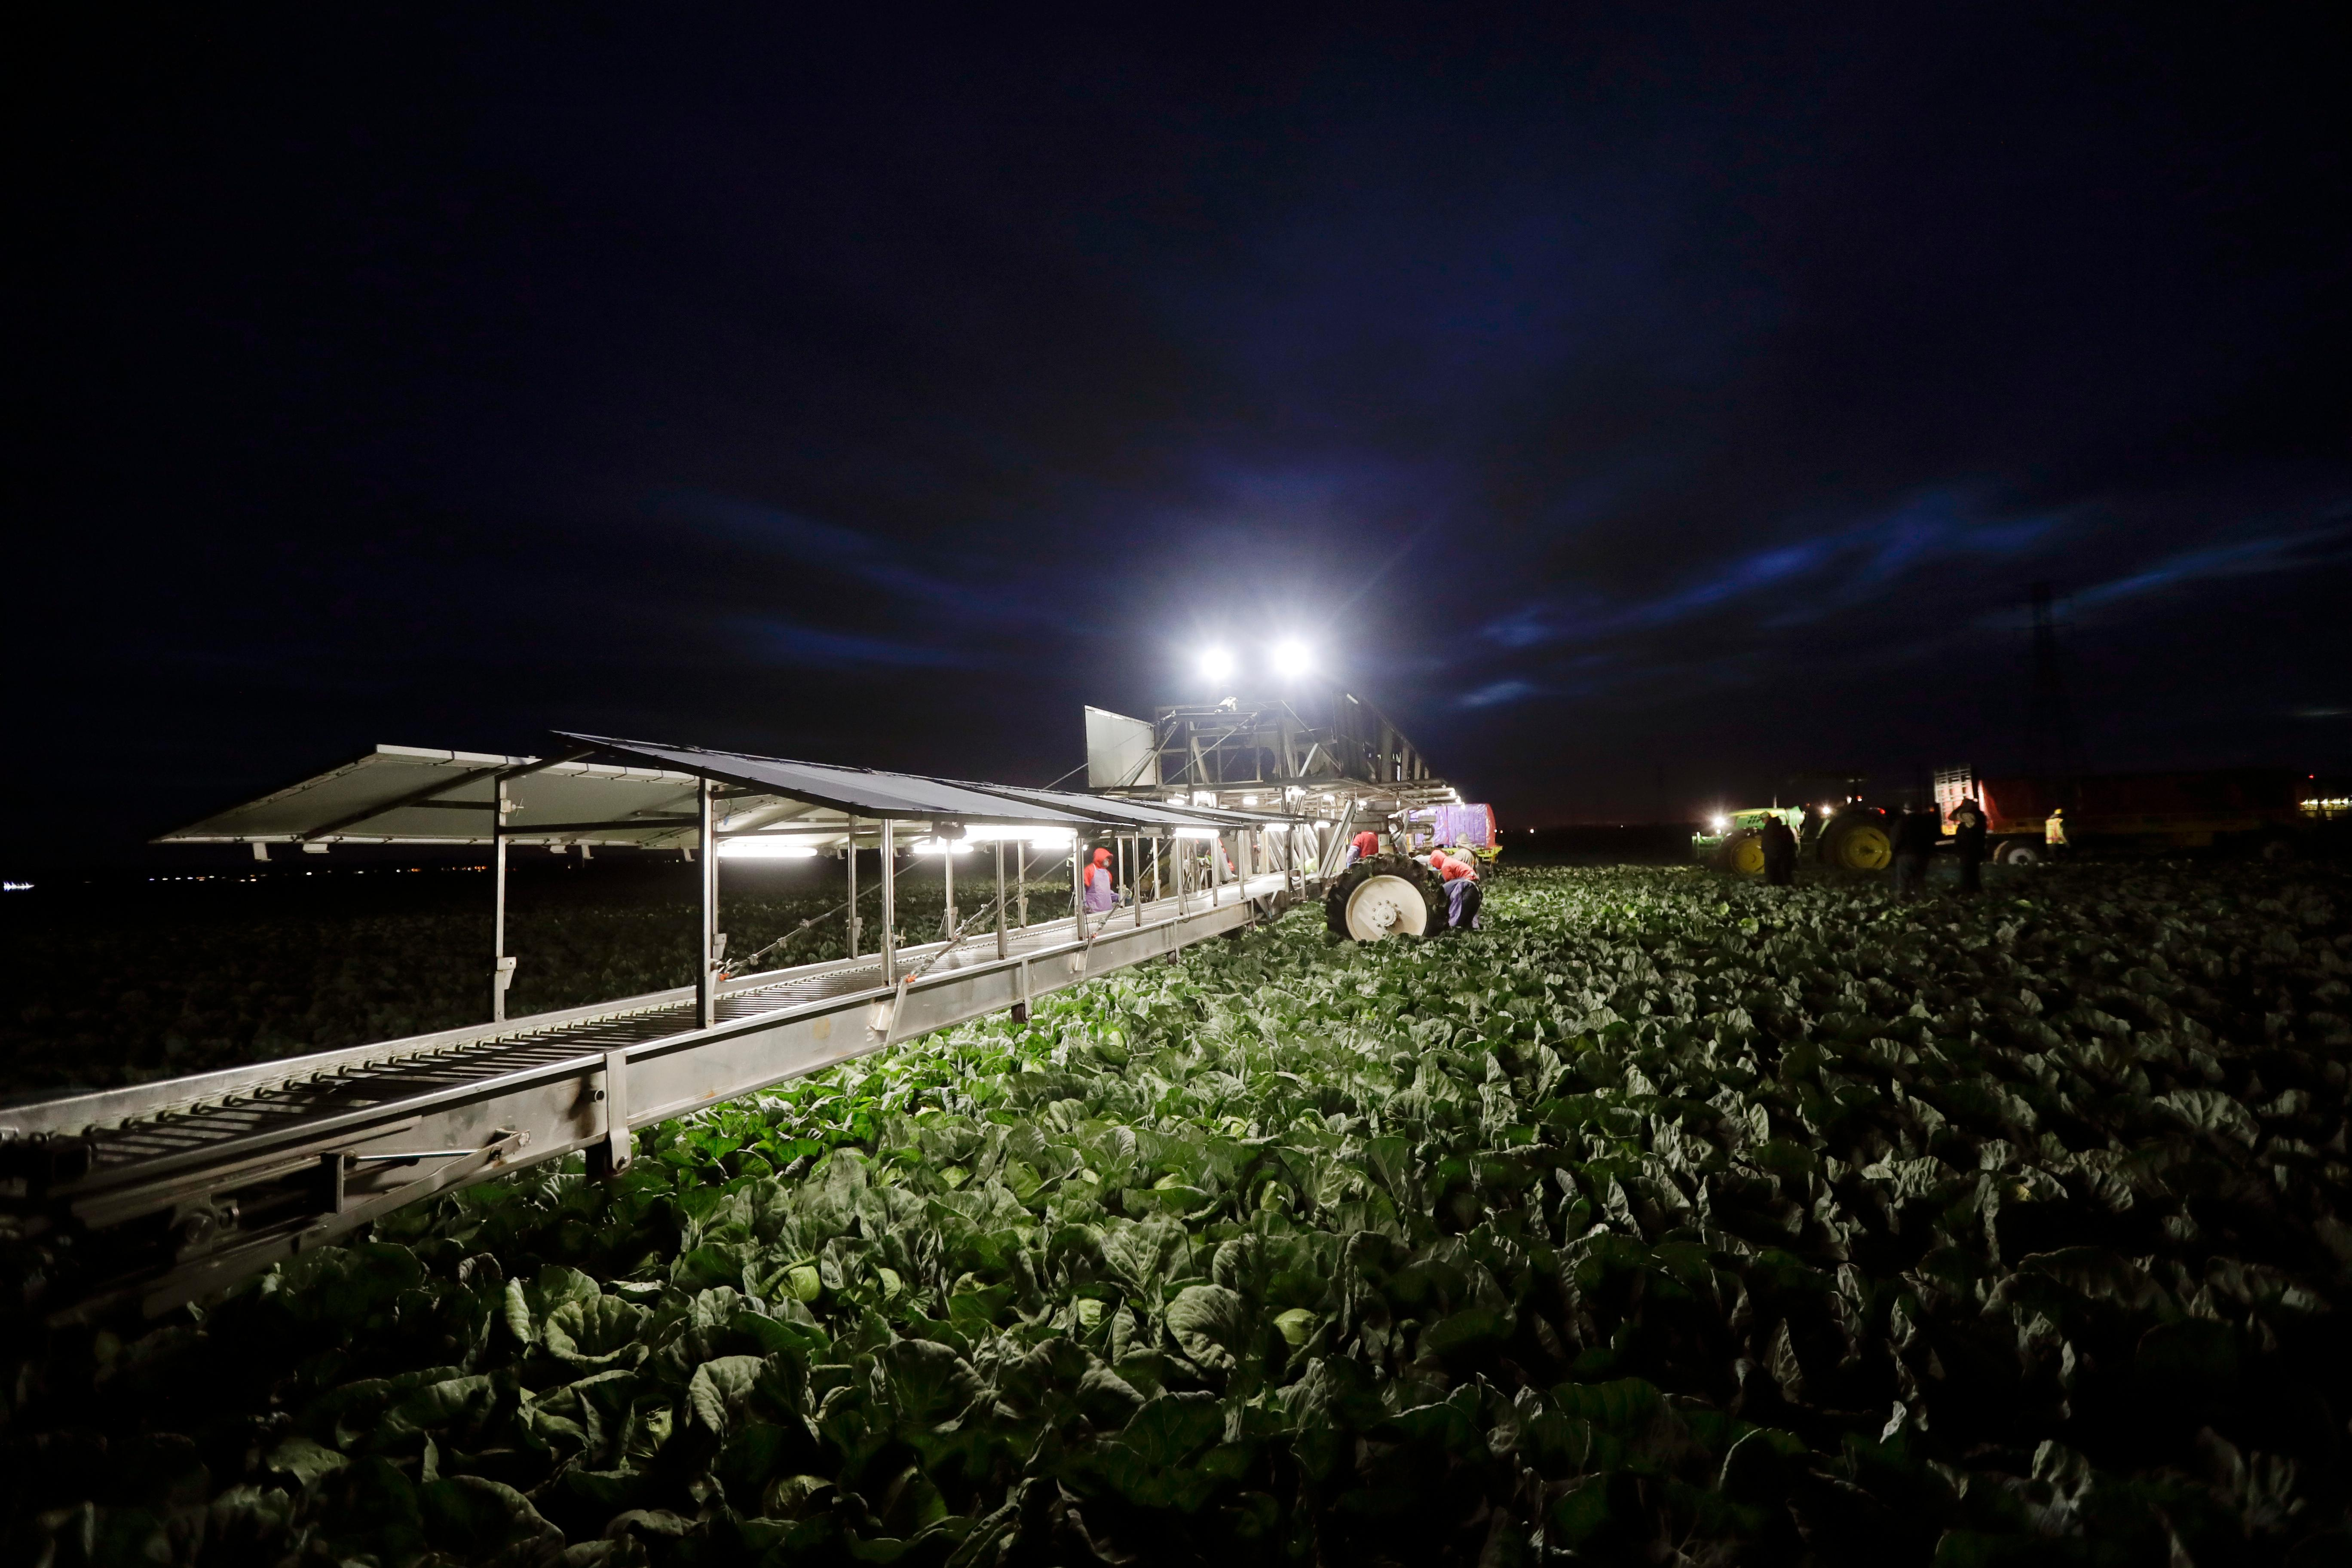 "In this March 6, 2018 photo, farmworkers harvest cabbage before dawn in a field outside of Calexico, Calif. For decades, cross-border commuters have picked lettuce, carrots, broccoli, onions, cauliflower and other vegetables that make California's Imperial Valley ""America's Salad Bowl"" from December through March. As Trump visits the border for the first time as president on Tuesday, the harvest is a reminder of how little has changed despite heated rhetoric in Washington. (AP Photo/Gregory Bull)"